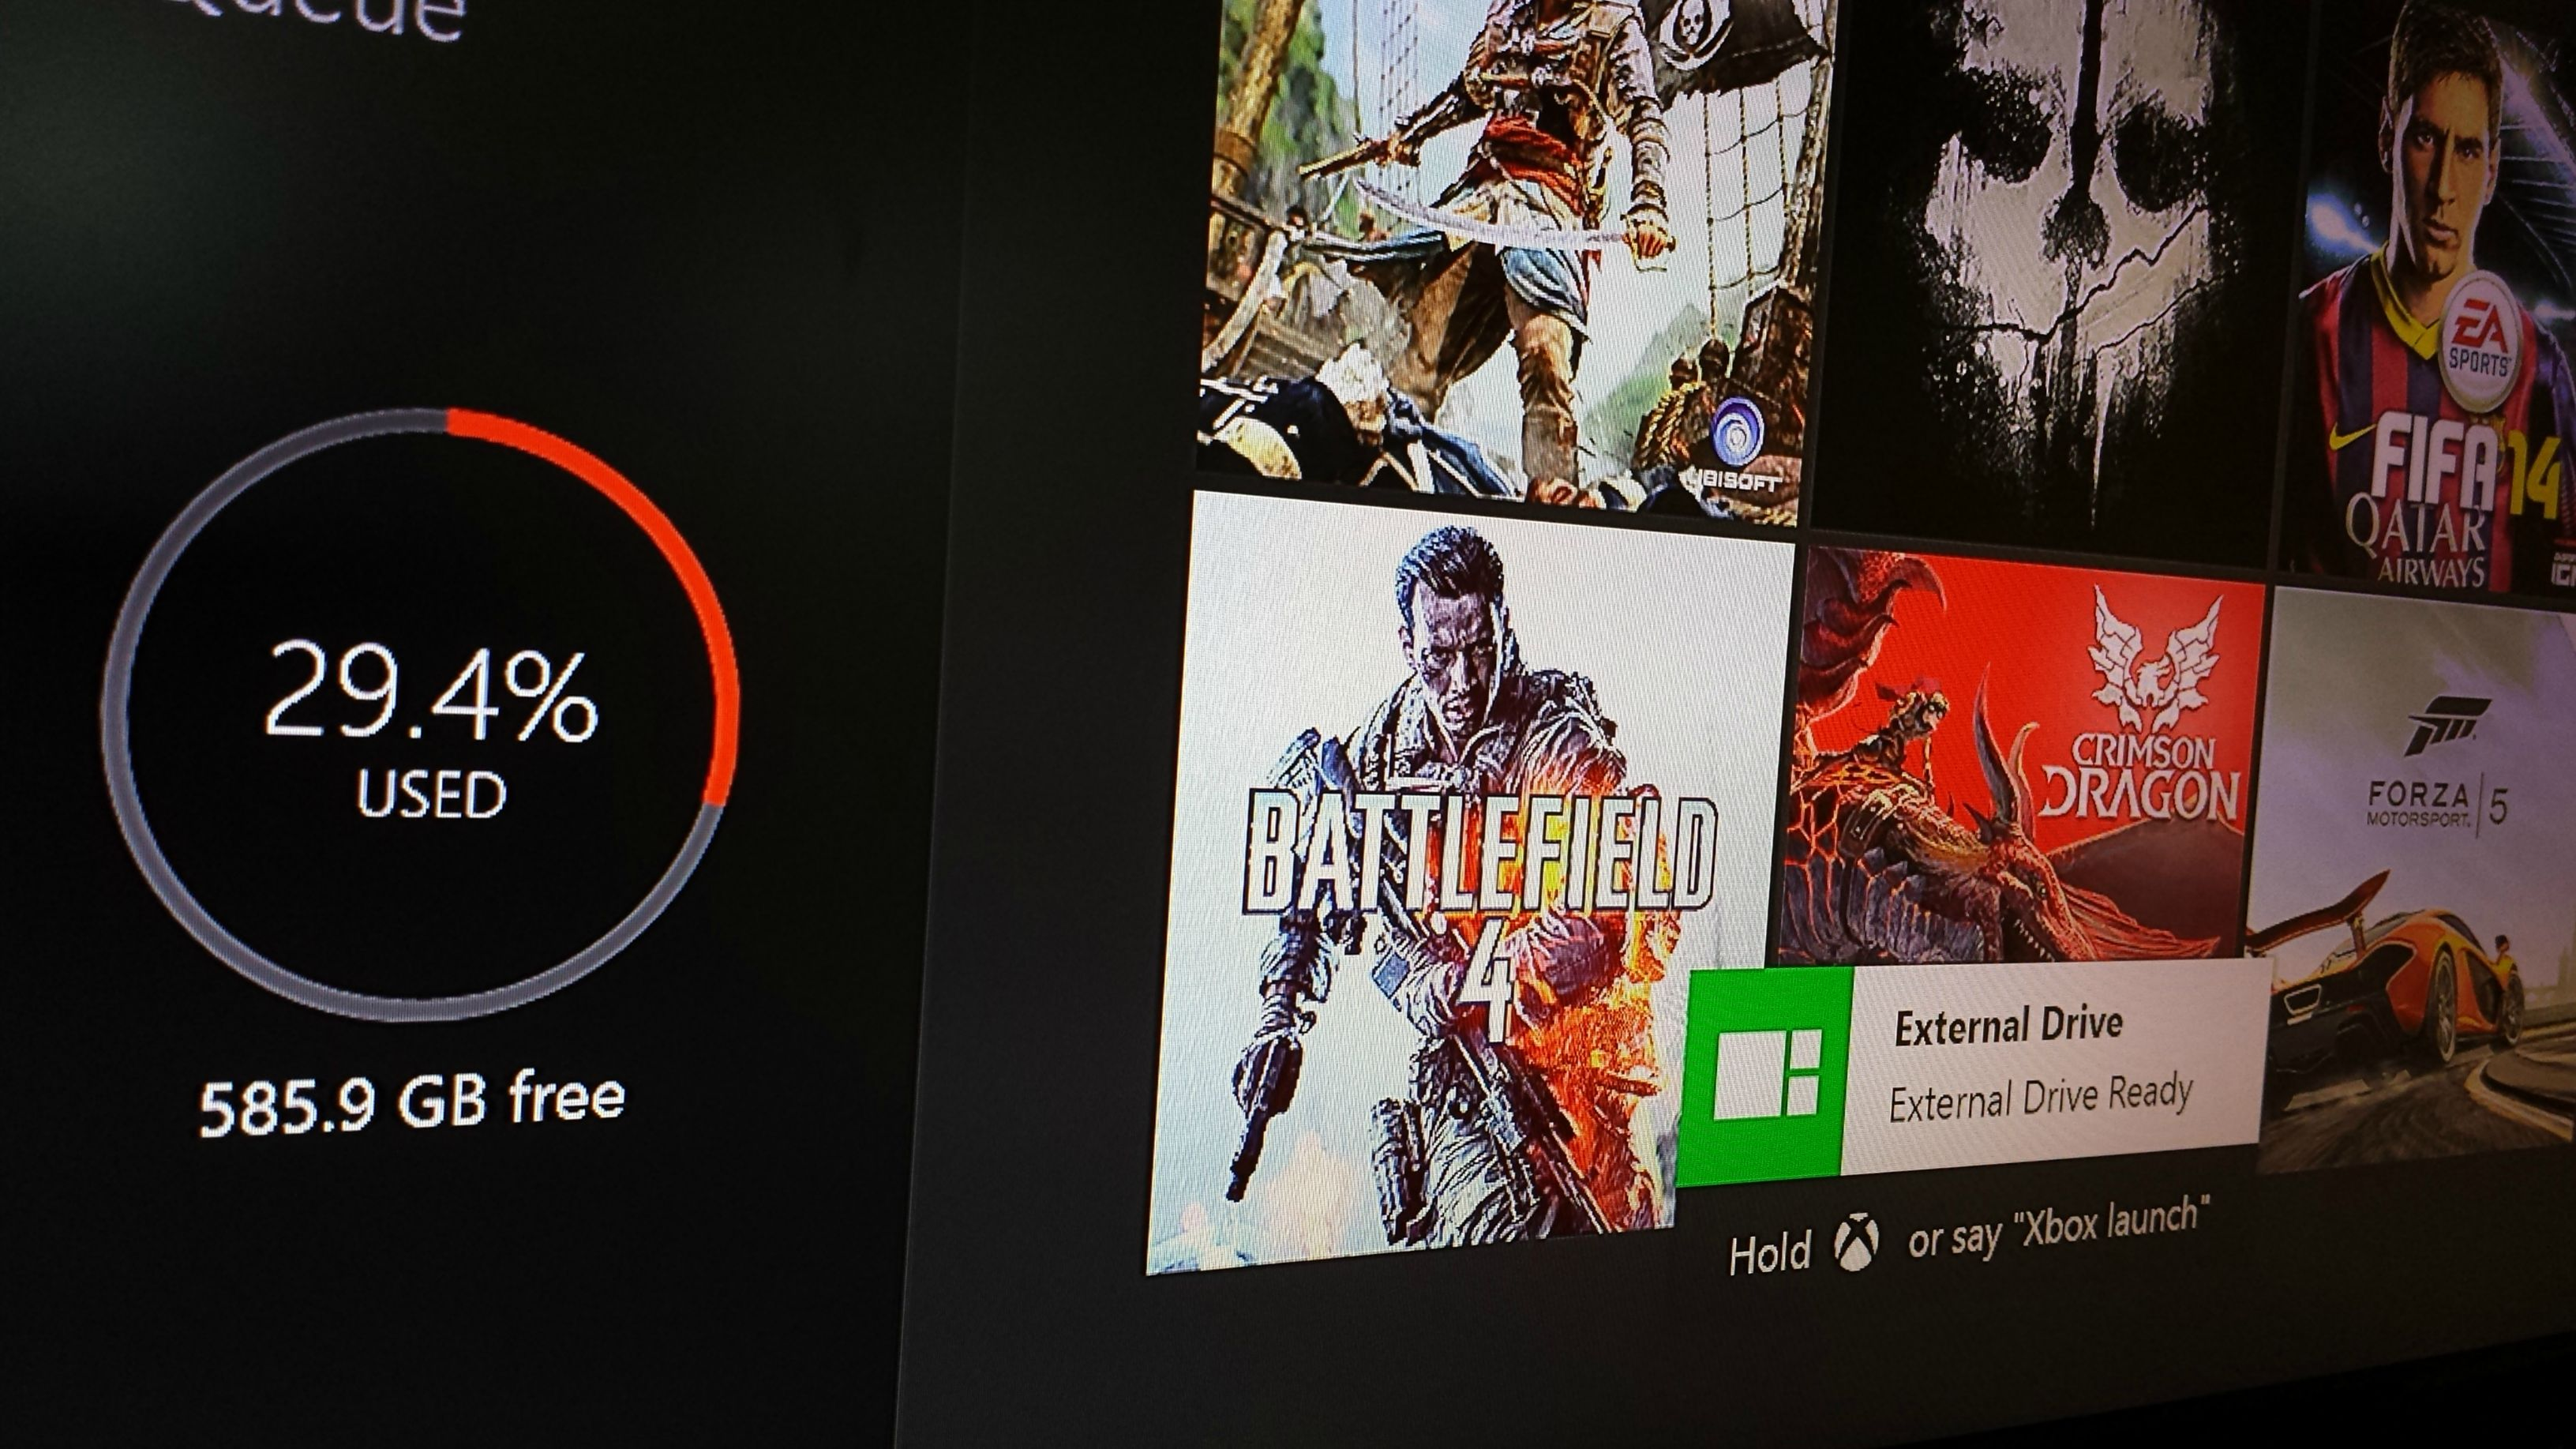 5 more xbox one tips download games to one hard drive for multiple consoles ccuart Images